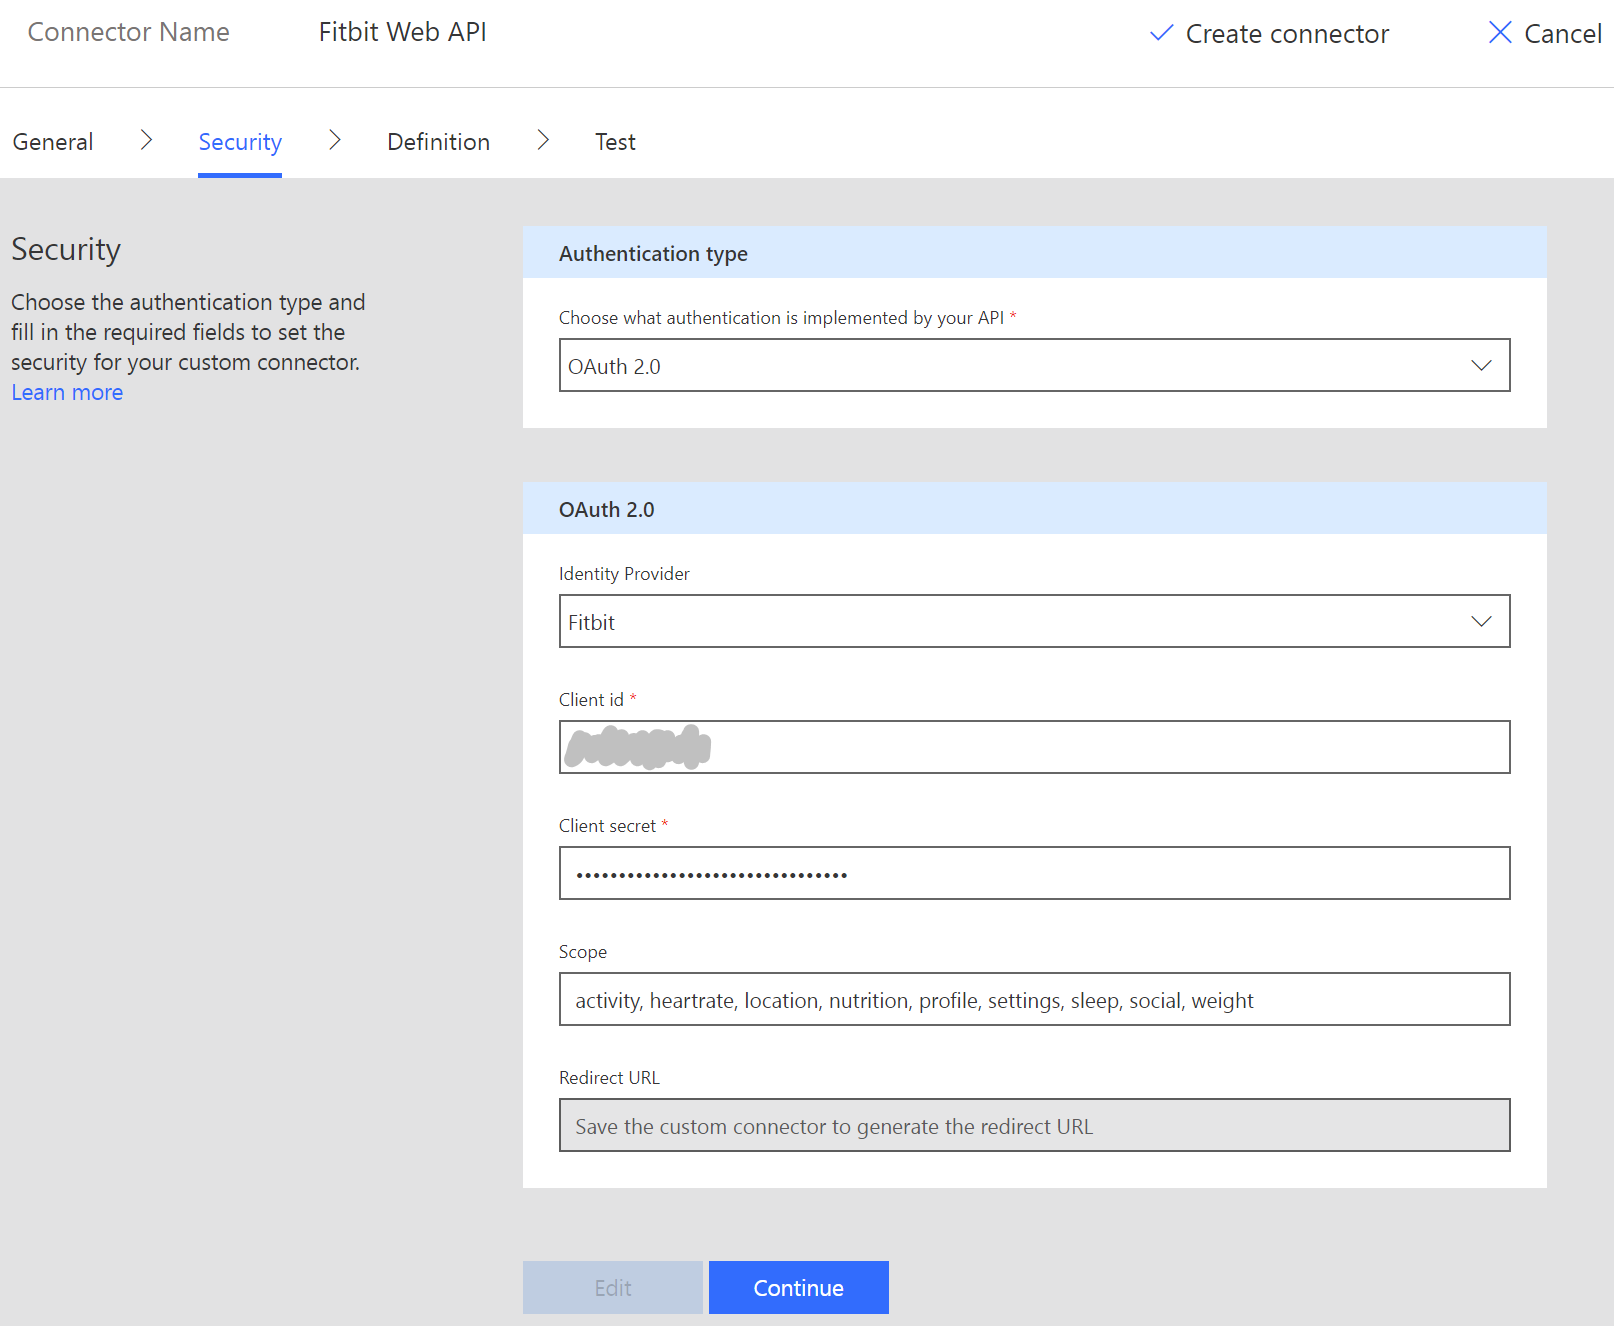 Security settings form page